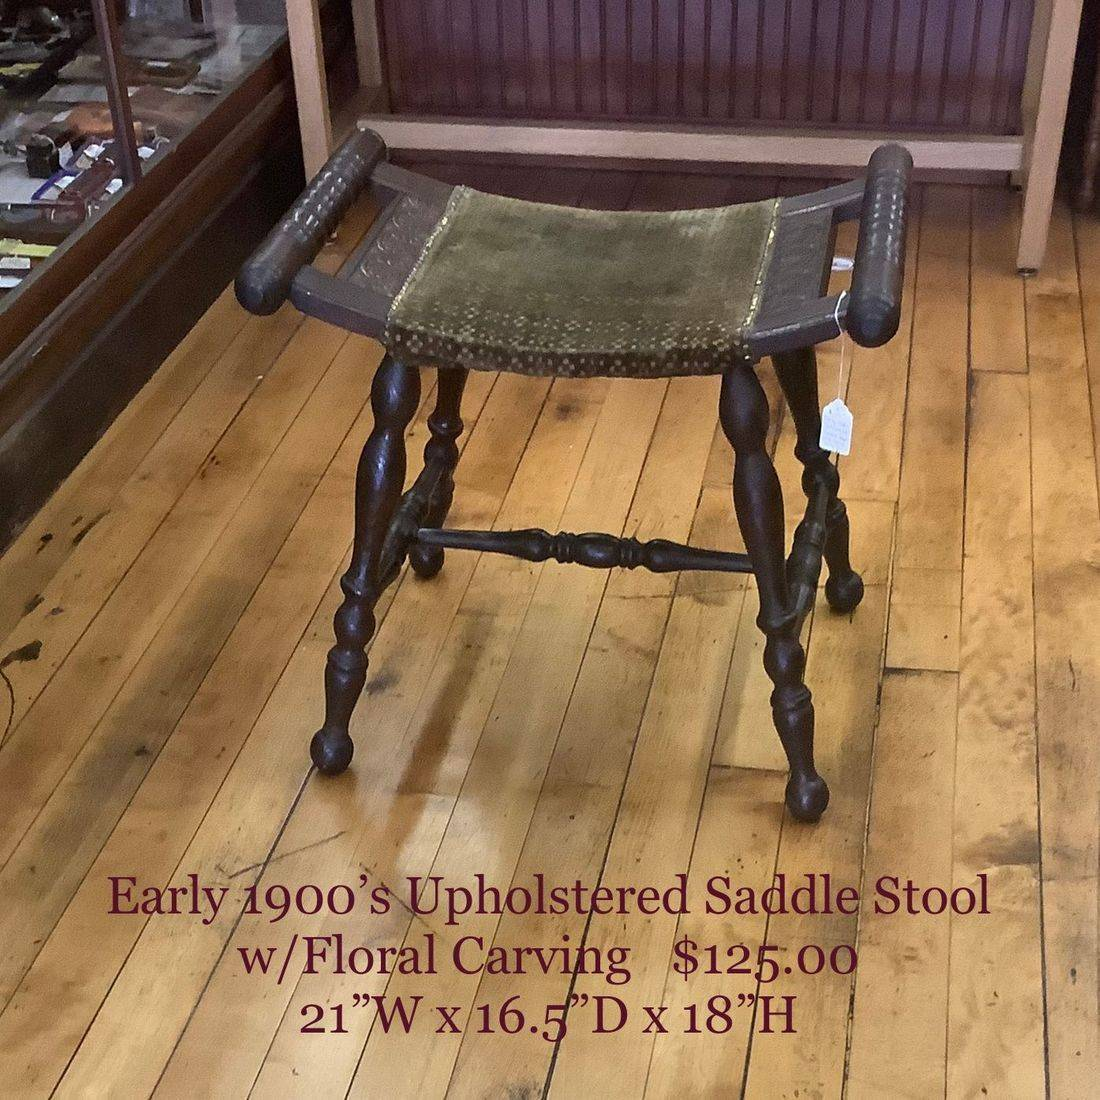 Early 1900's Upholstered Saddle Stool w/Floral Carving   $125.00